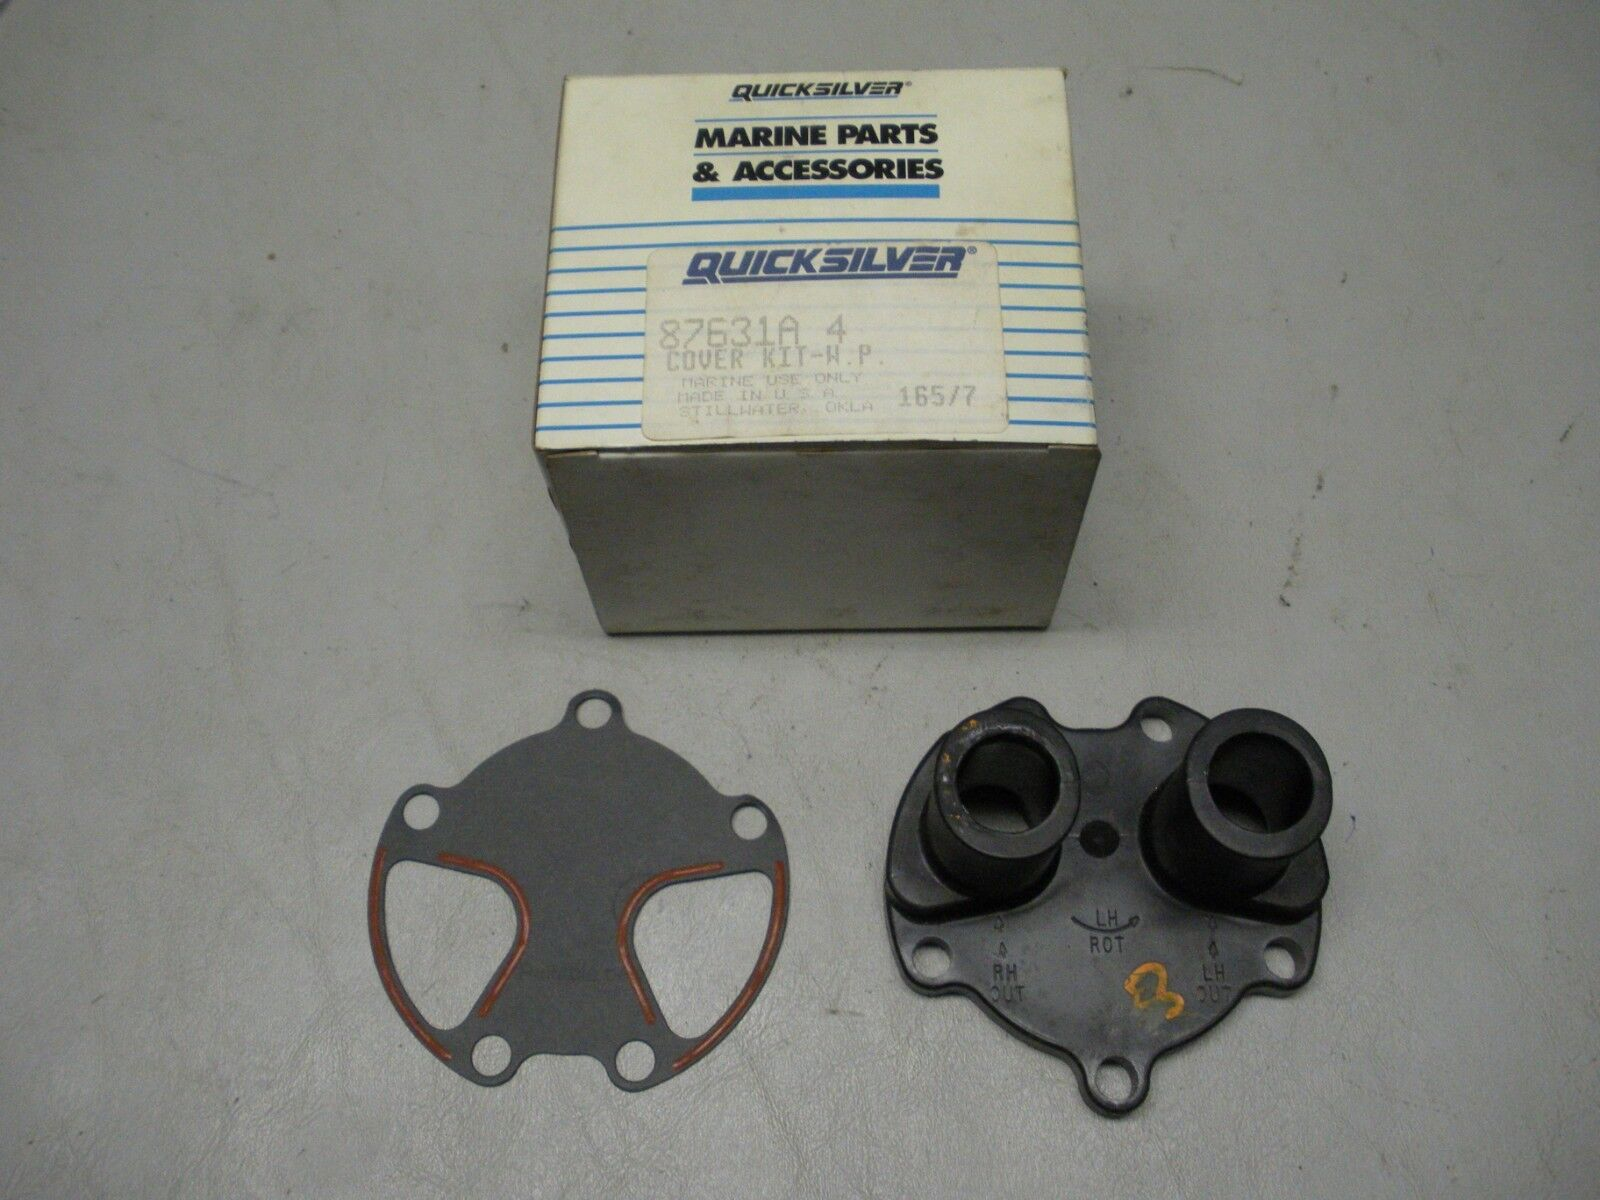 New Manifold sierra 18-19981 Replaces Barr# FM-1-83 Application Port & Starboard